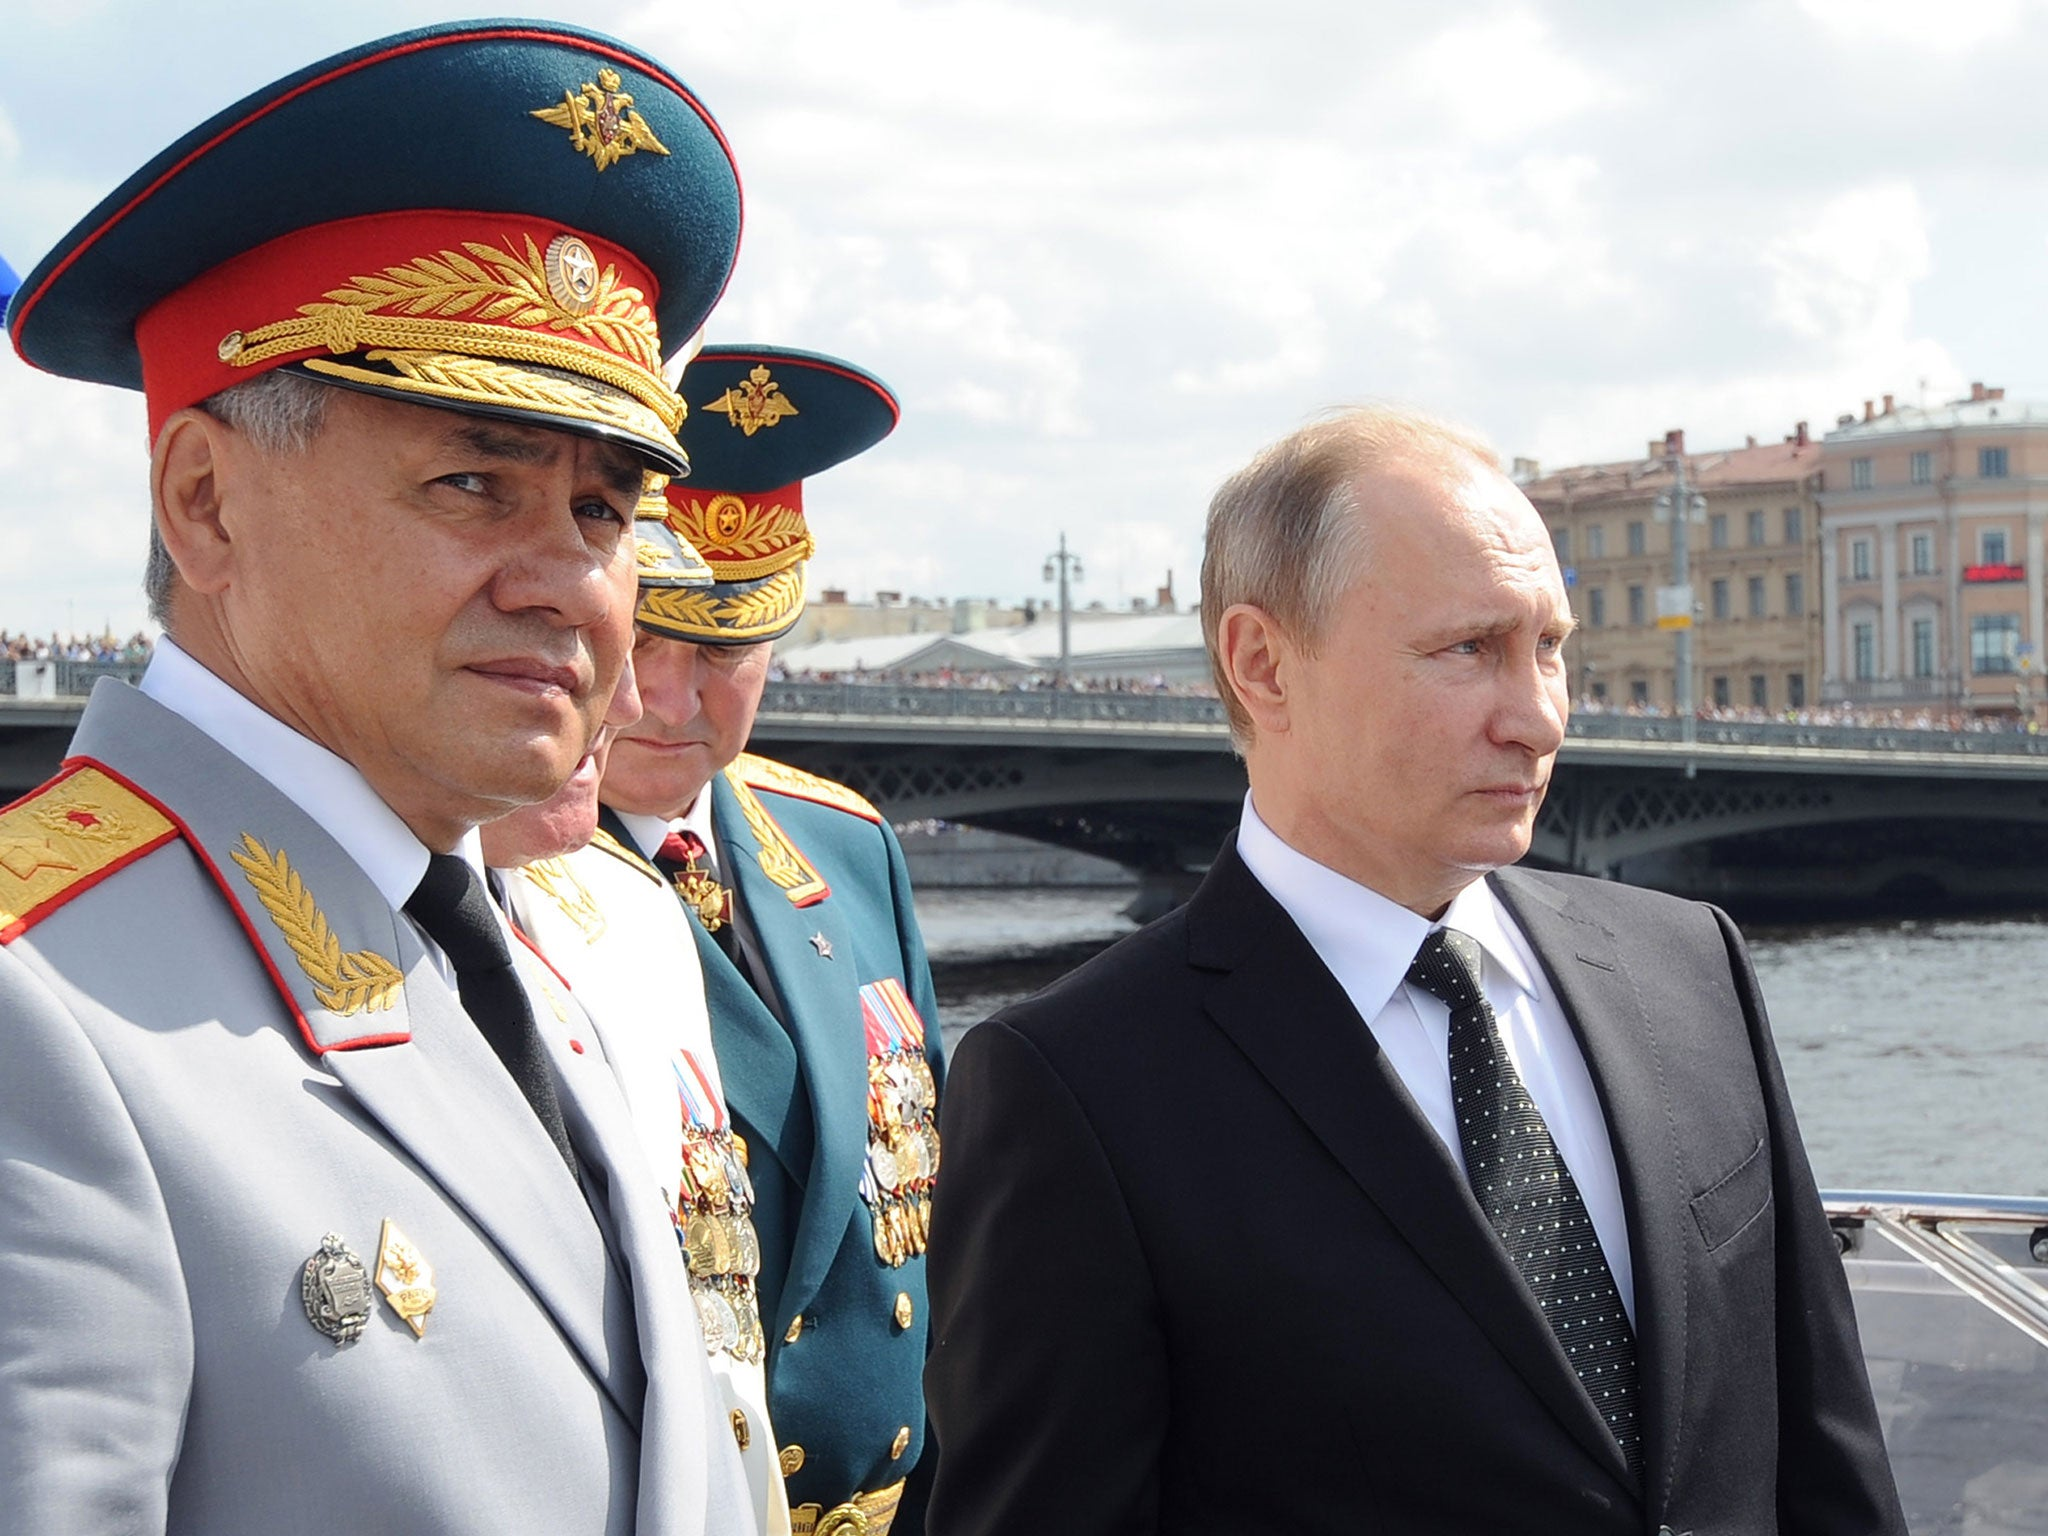 Shoigu told about the new subspecies of the Armed Forces of the Russian Federation 02.02.2017 39